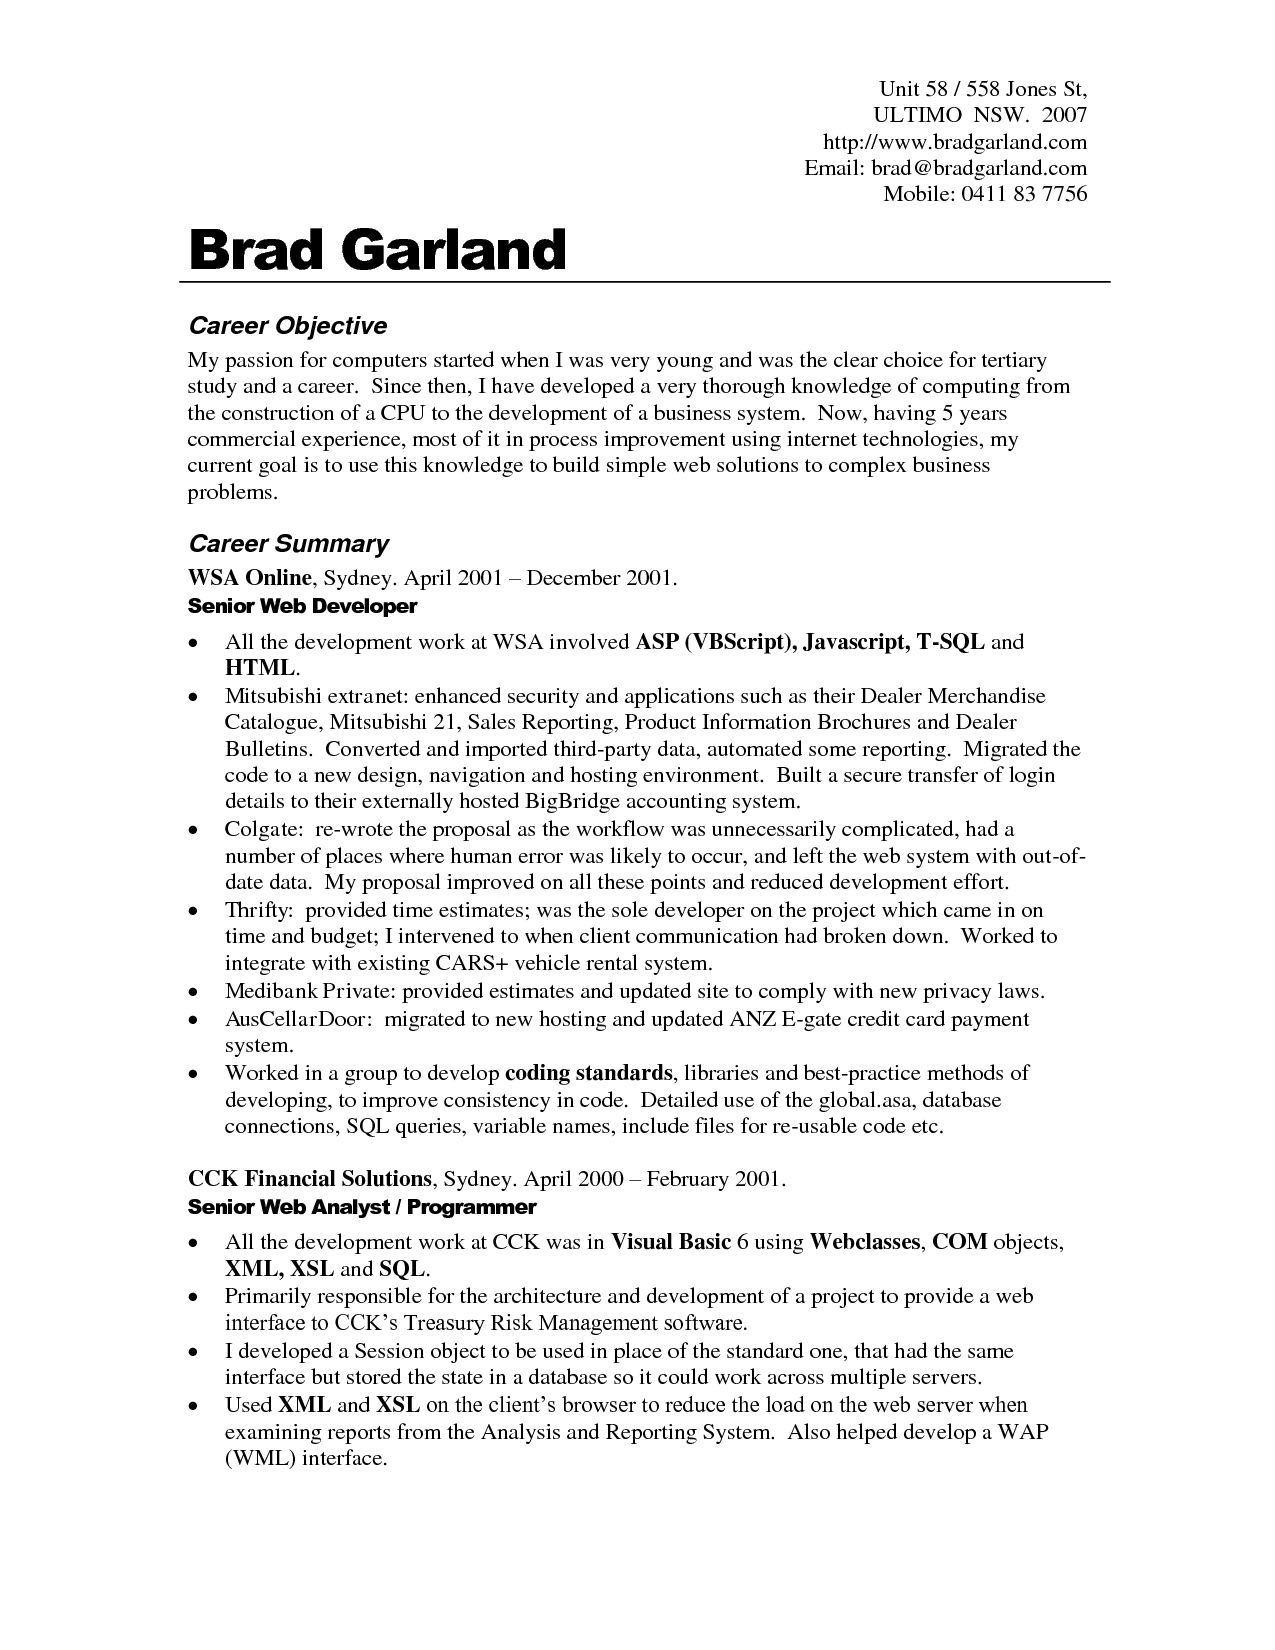 Good Career Objective Resume Endearing Resume Examples Job Objective  Sample Resume Entry Level And .